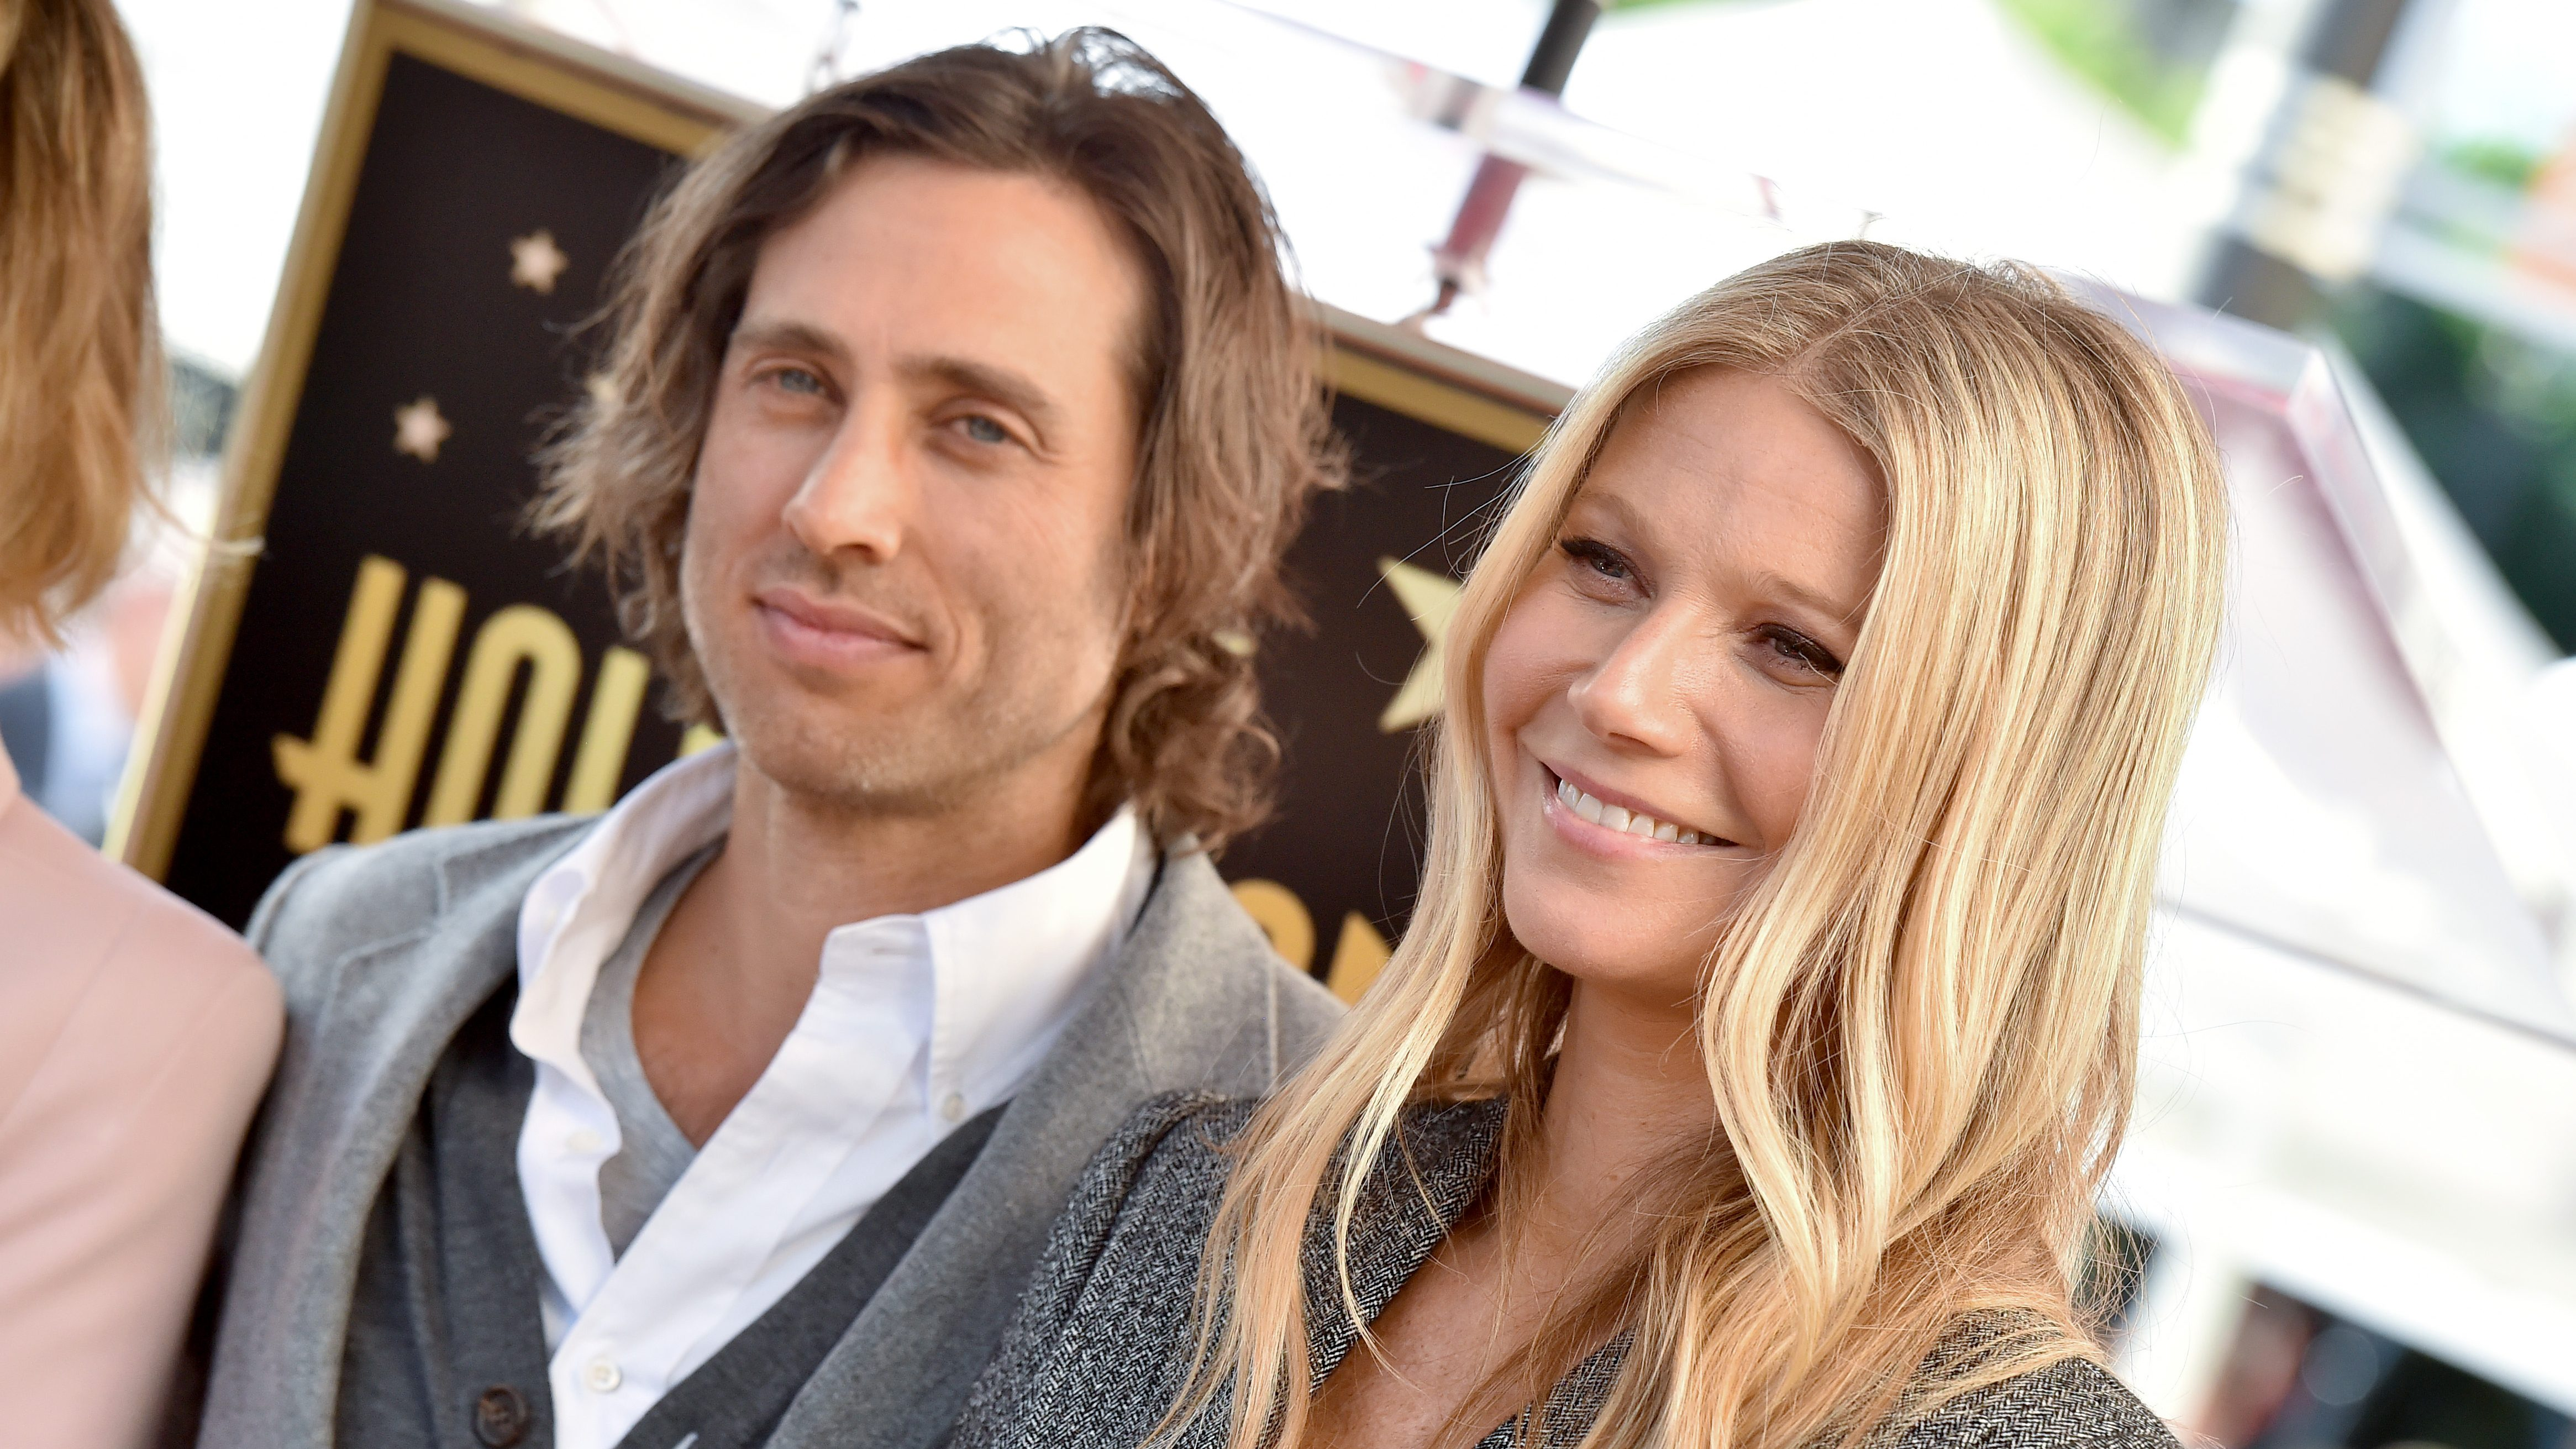 Gwyneth Paltrow's Husband Brad Falchuk Calls Her 'Mean' for Sharing Sexy Pic While They're Apart